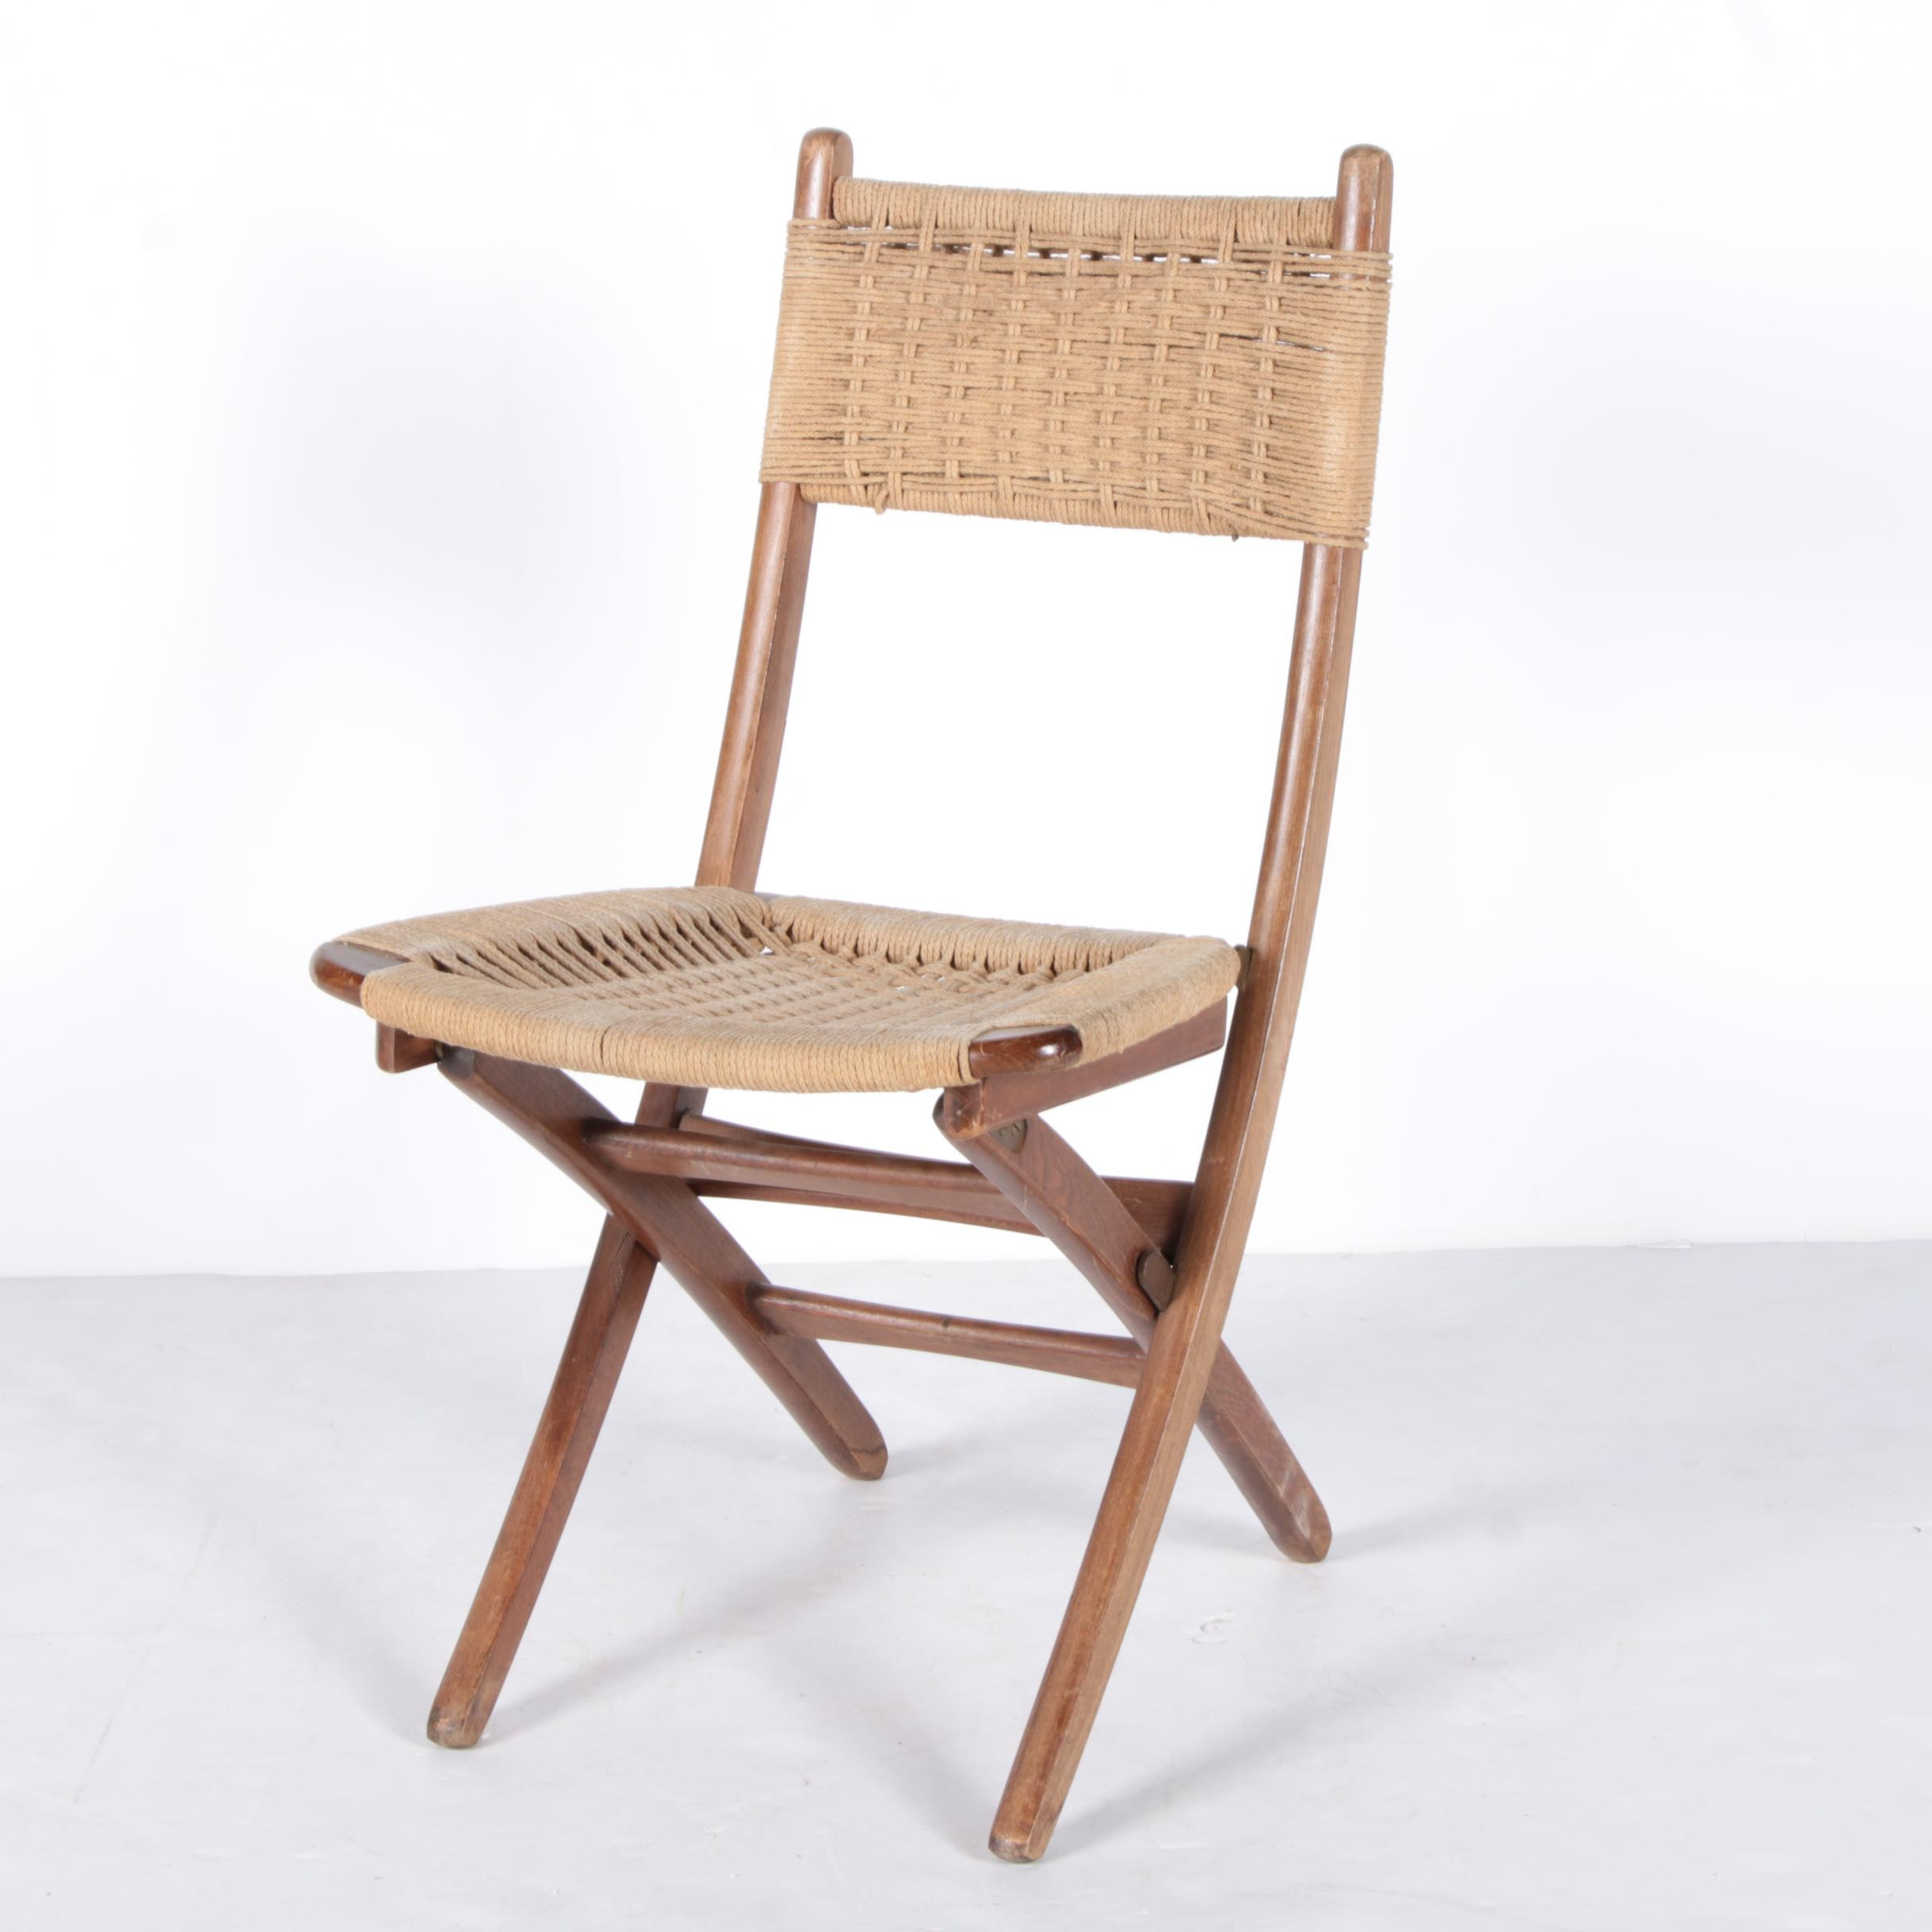 Wooden Folding Chair with Woven Seat